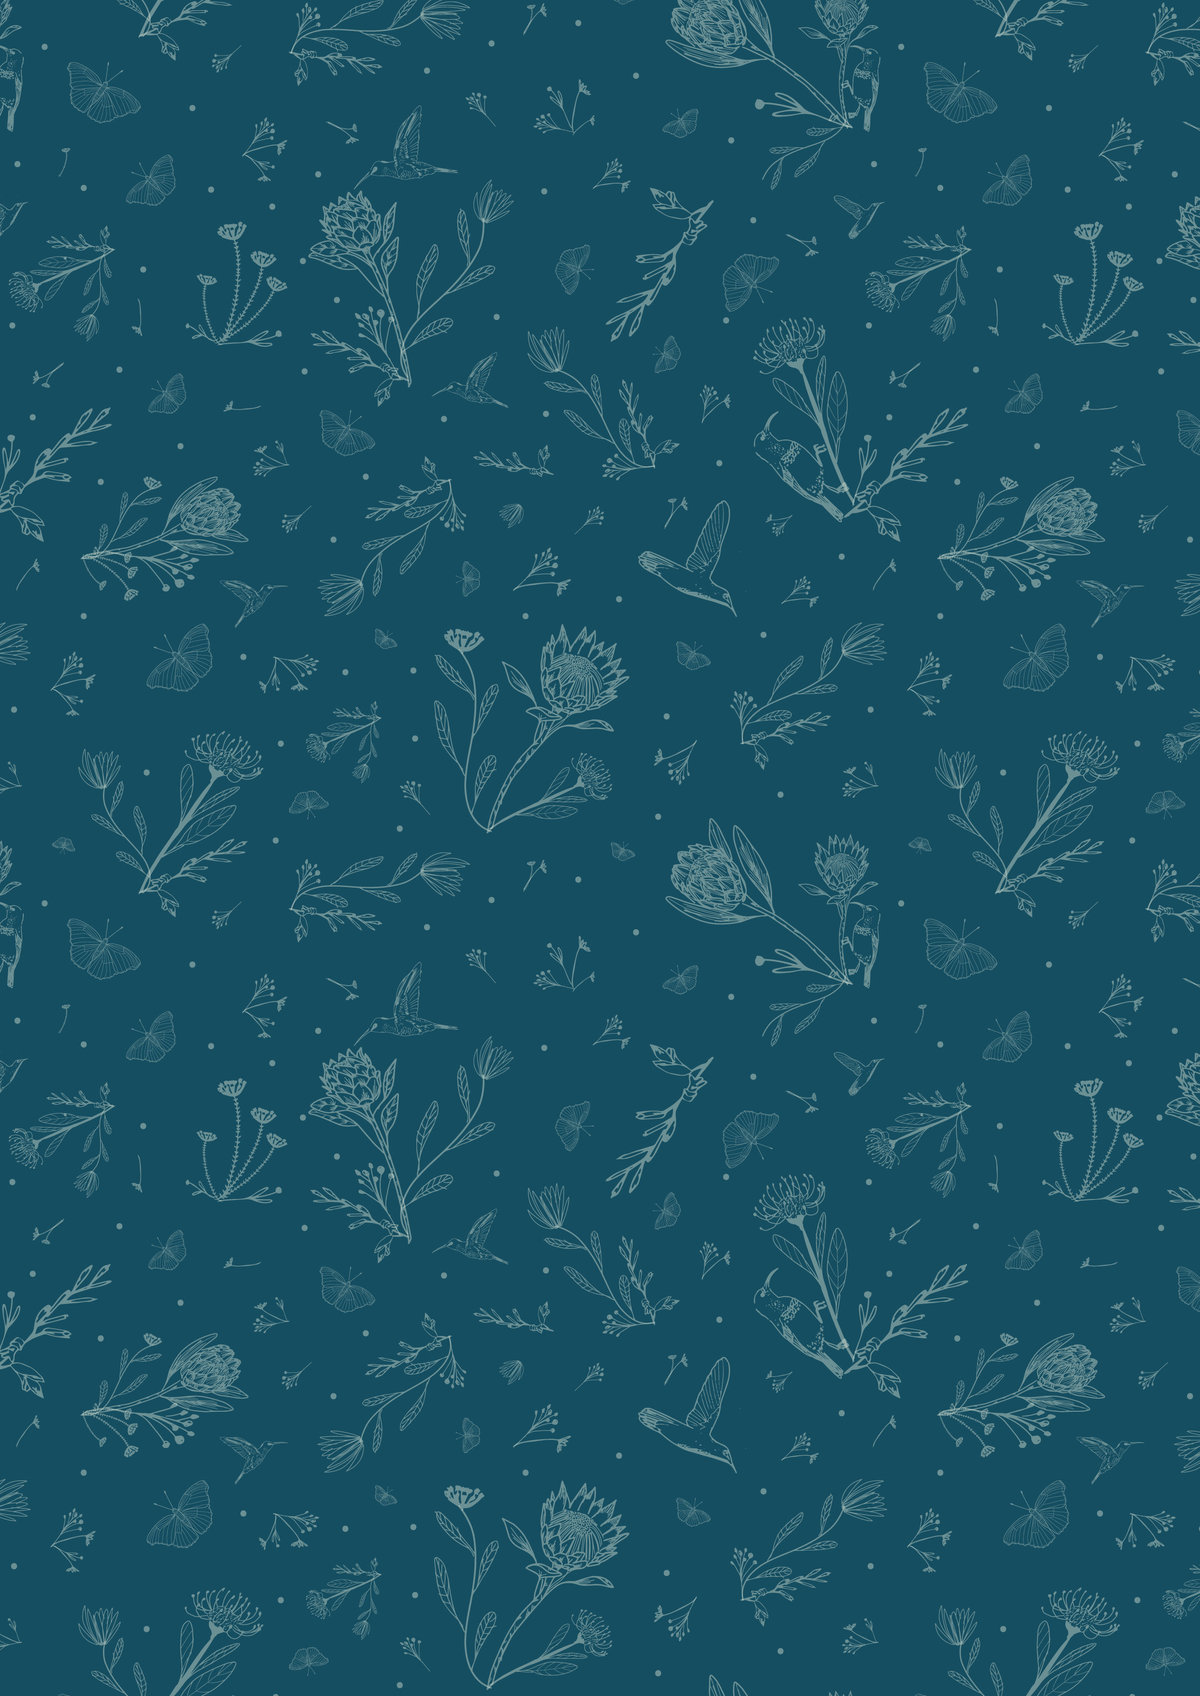 Fynbos-Pattern-Teal-REPEAT-05